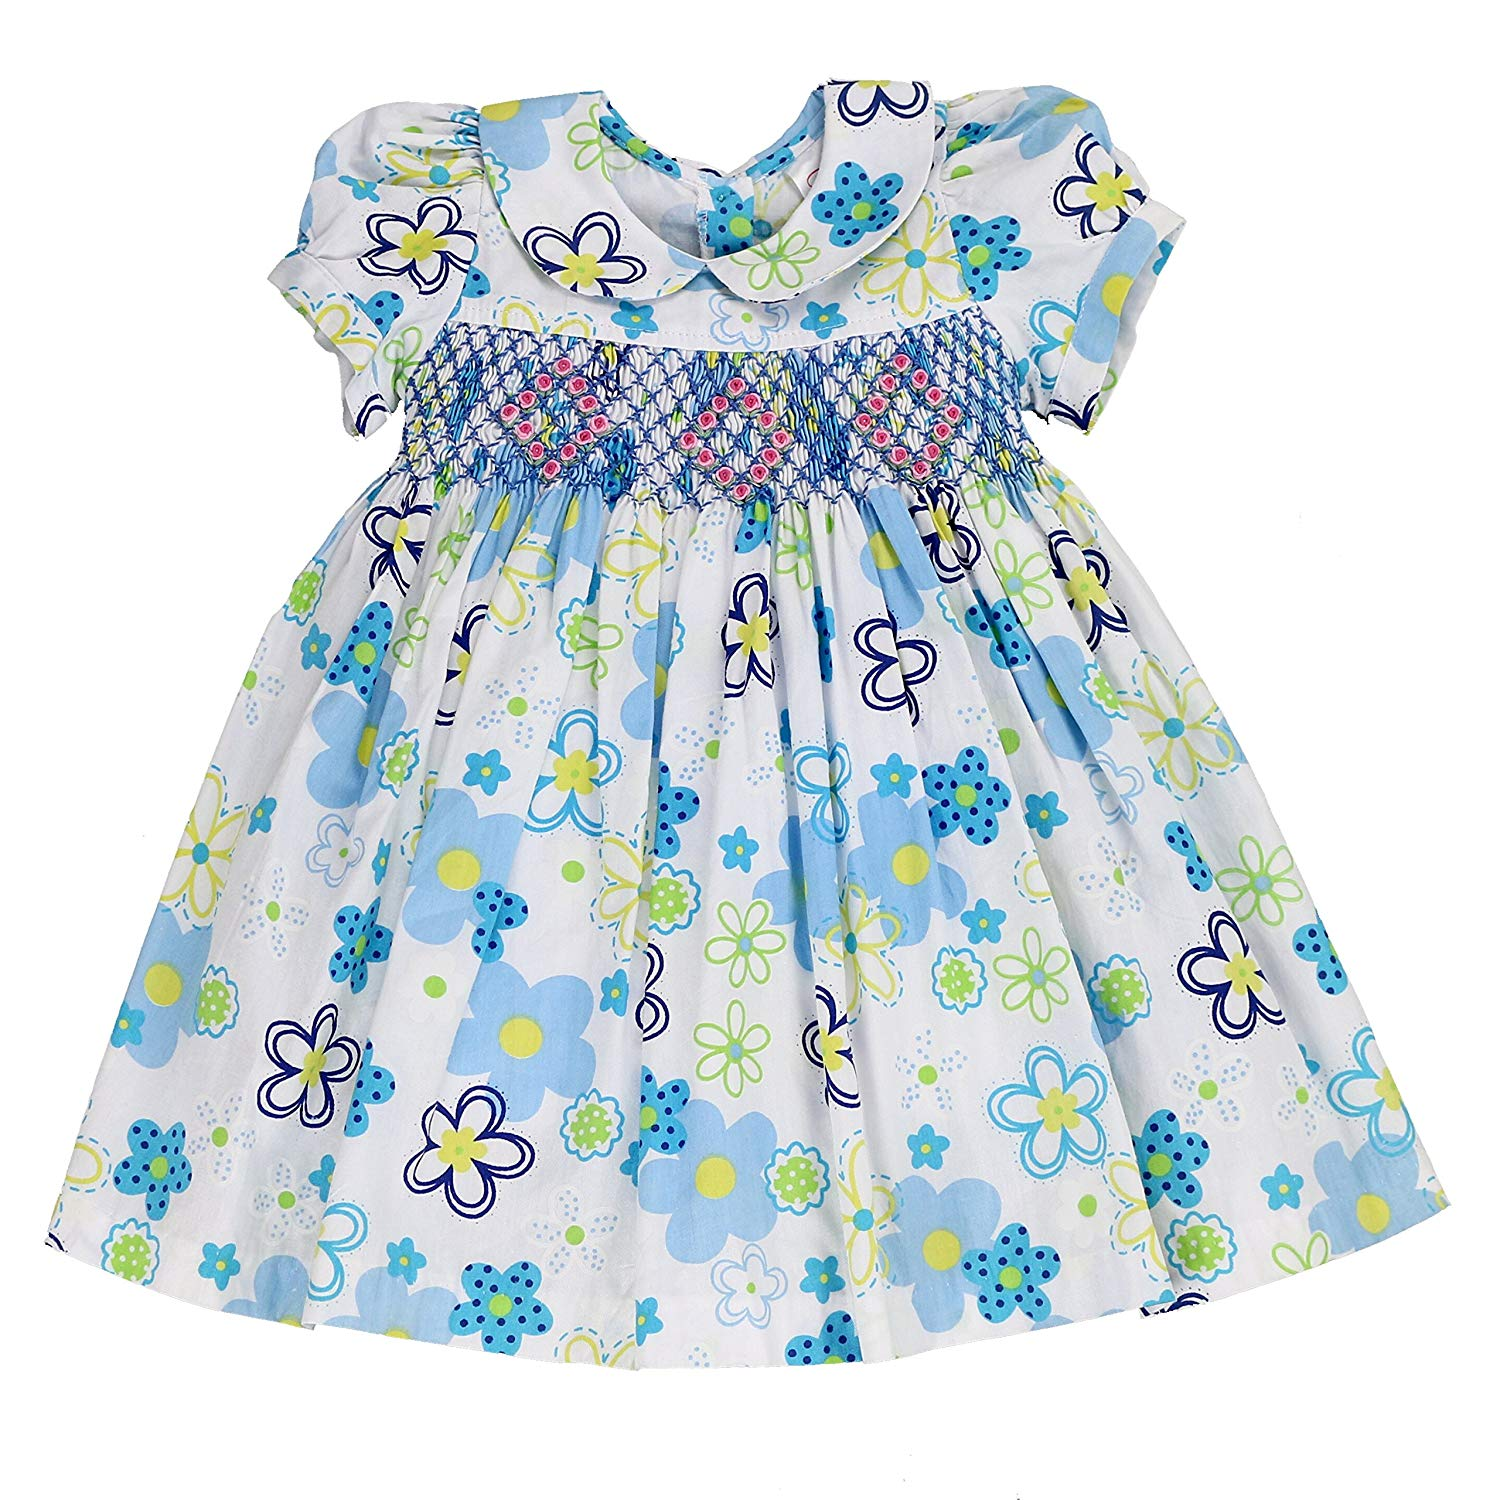 b0d24e1c5 Get Quotations · sissymini Infant & Toddler Hand Smocked Dress Patrycja  Hana In Gorgeous Blue Floral